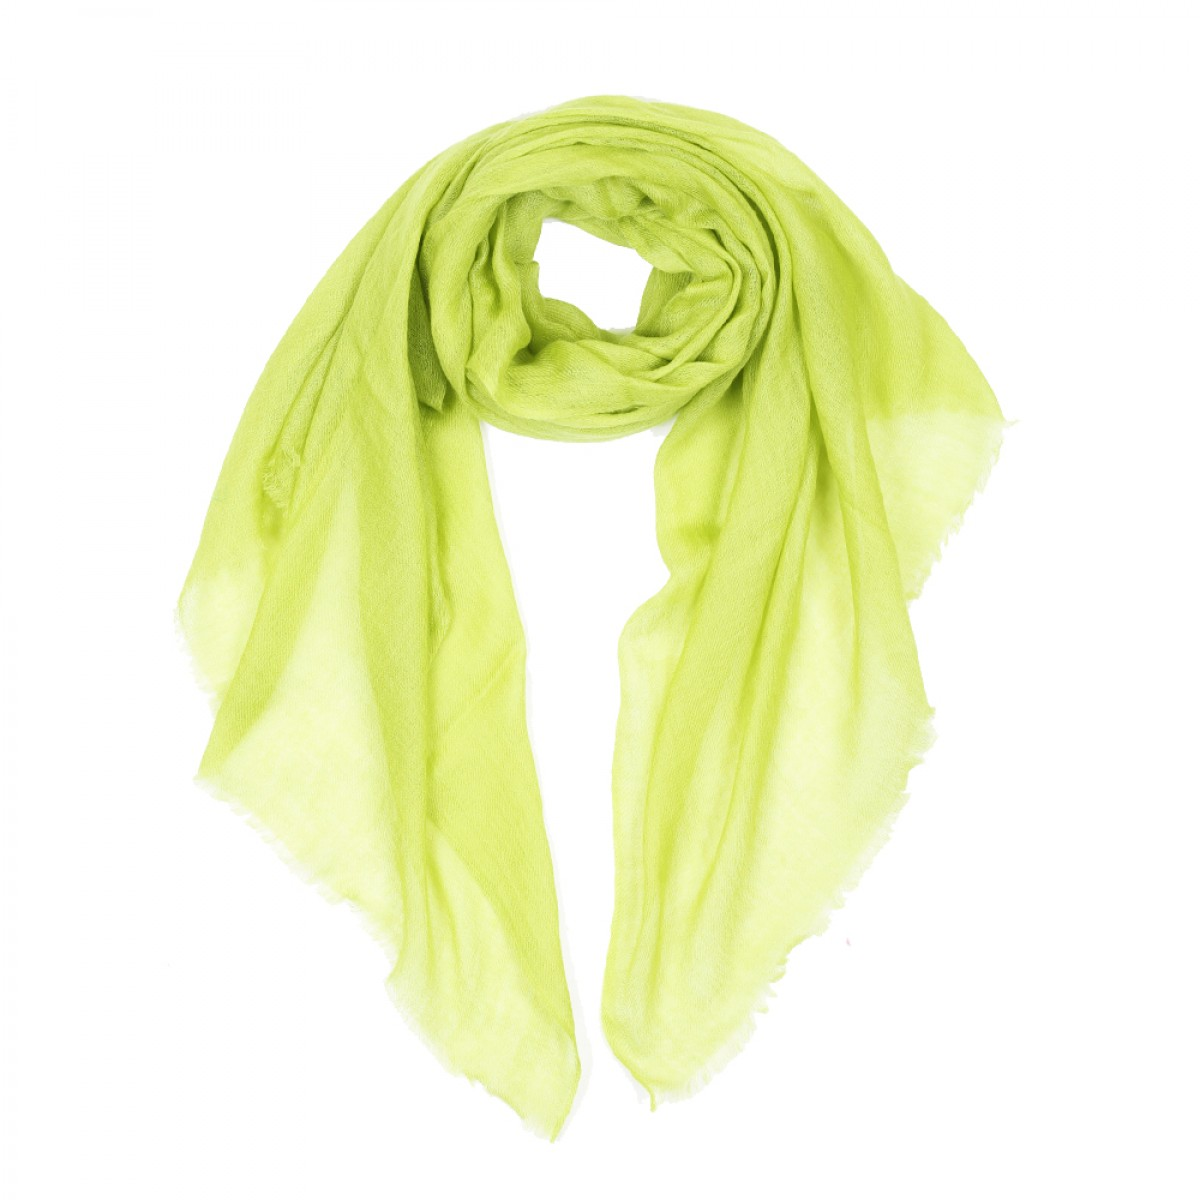 Sheer Pashmina Scarf - Green Tea